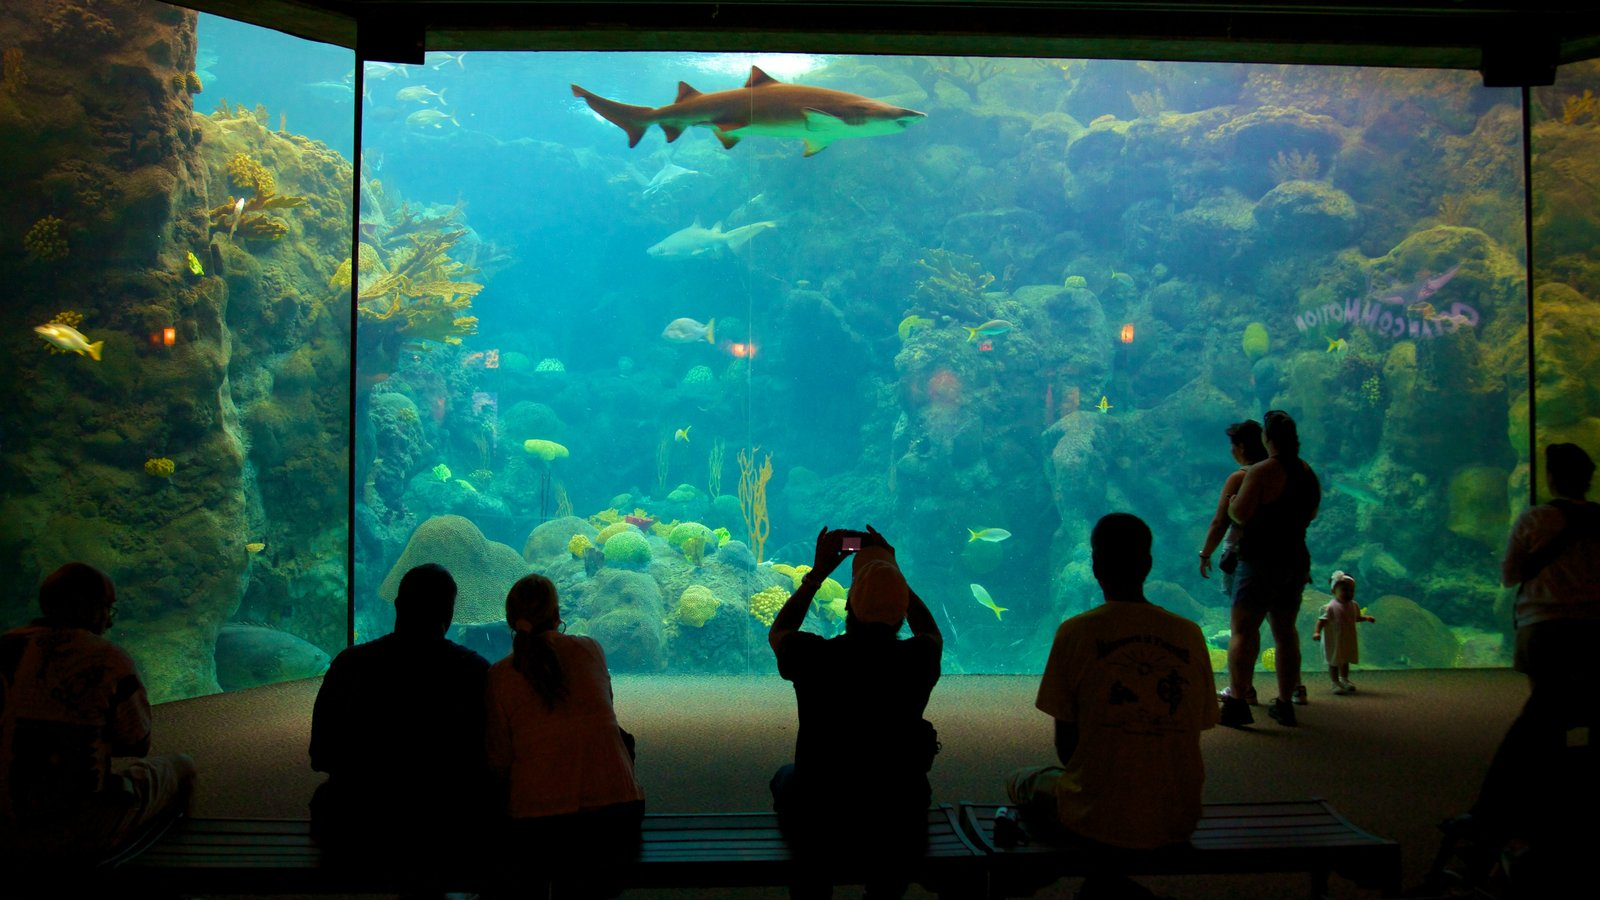 Tampa showing marine life and interior views as well as a small group of people